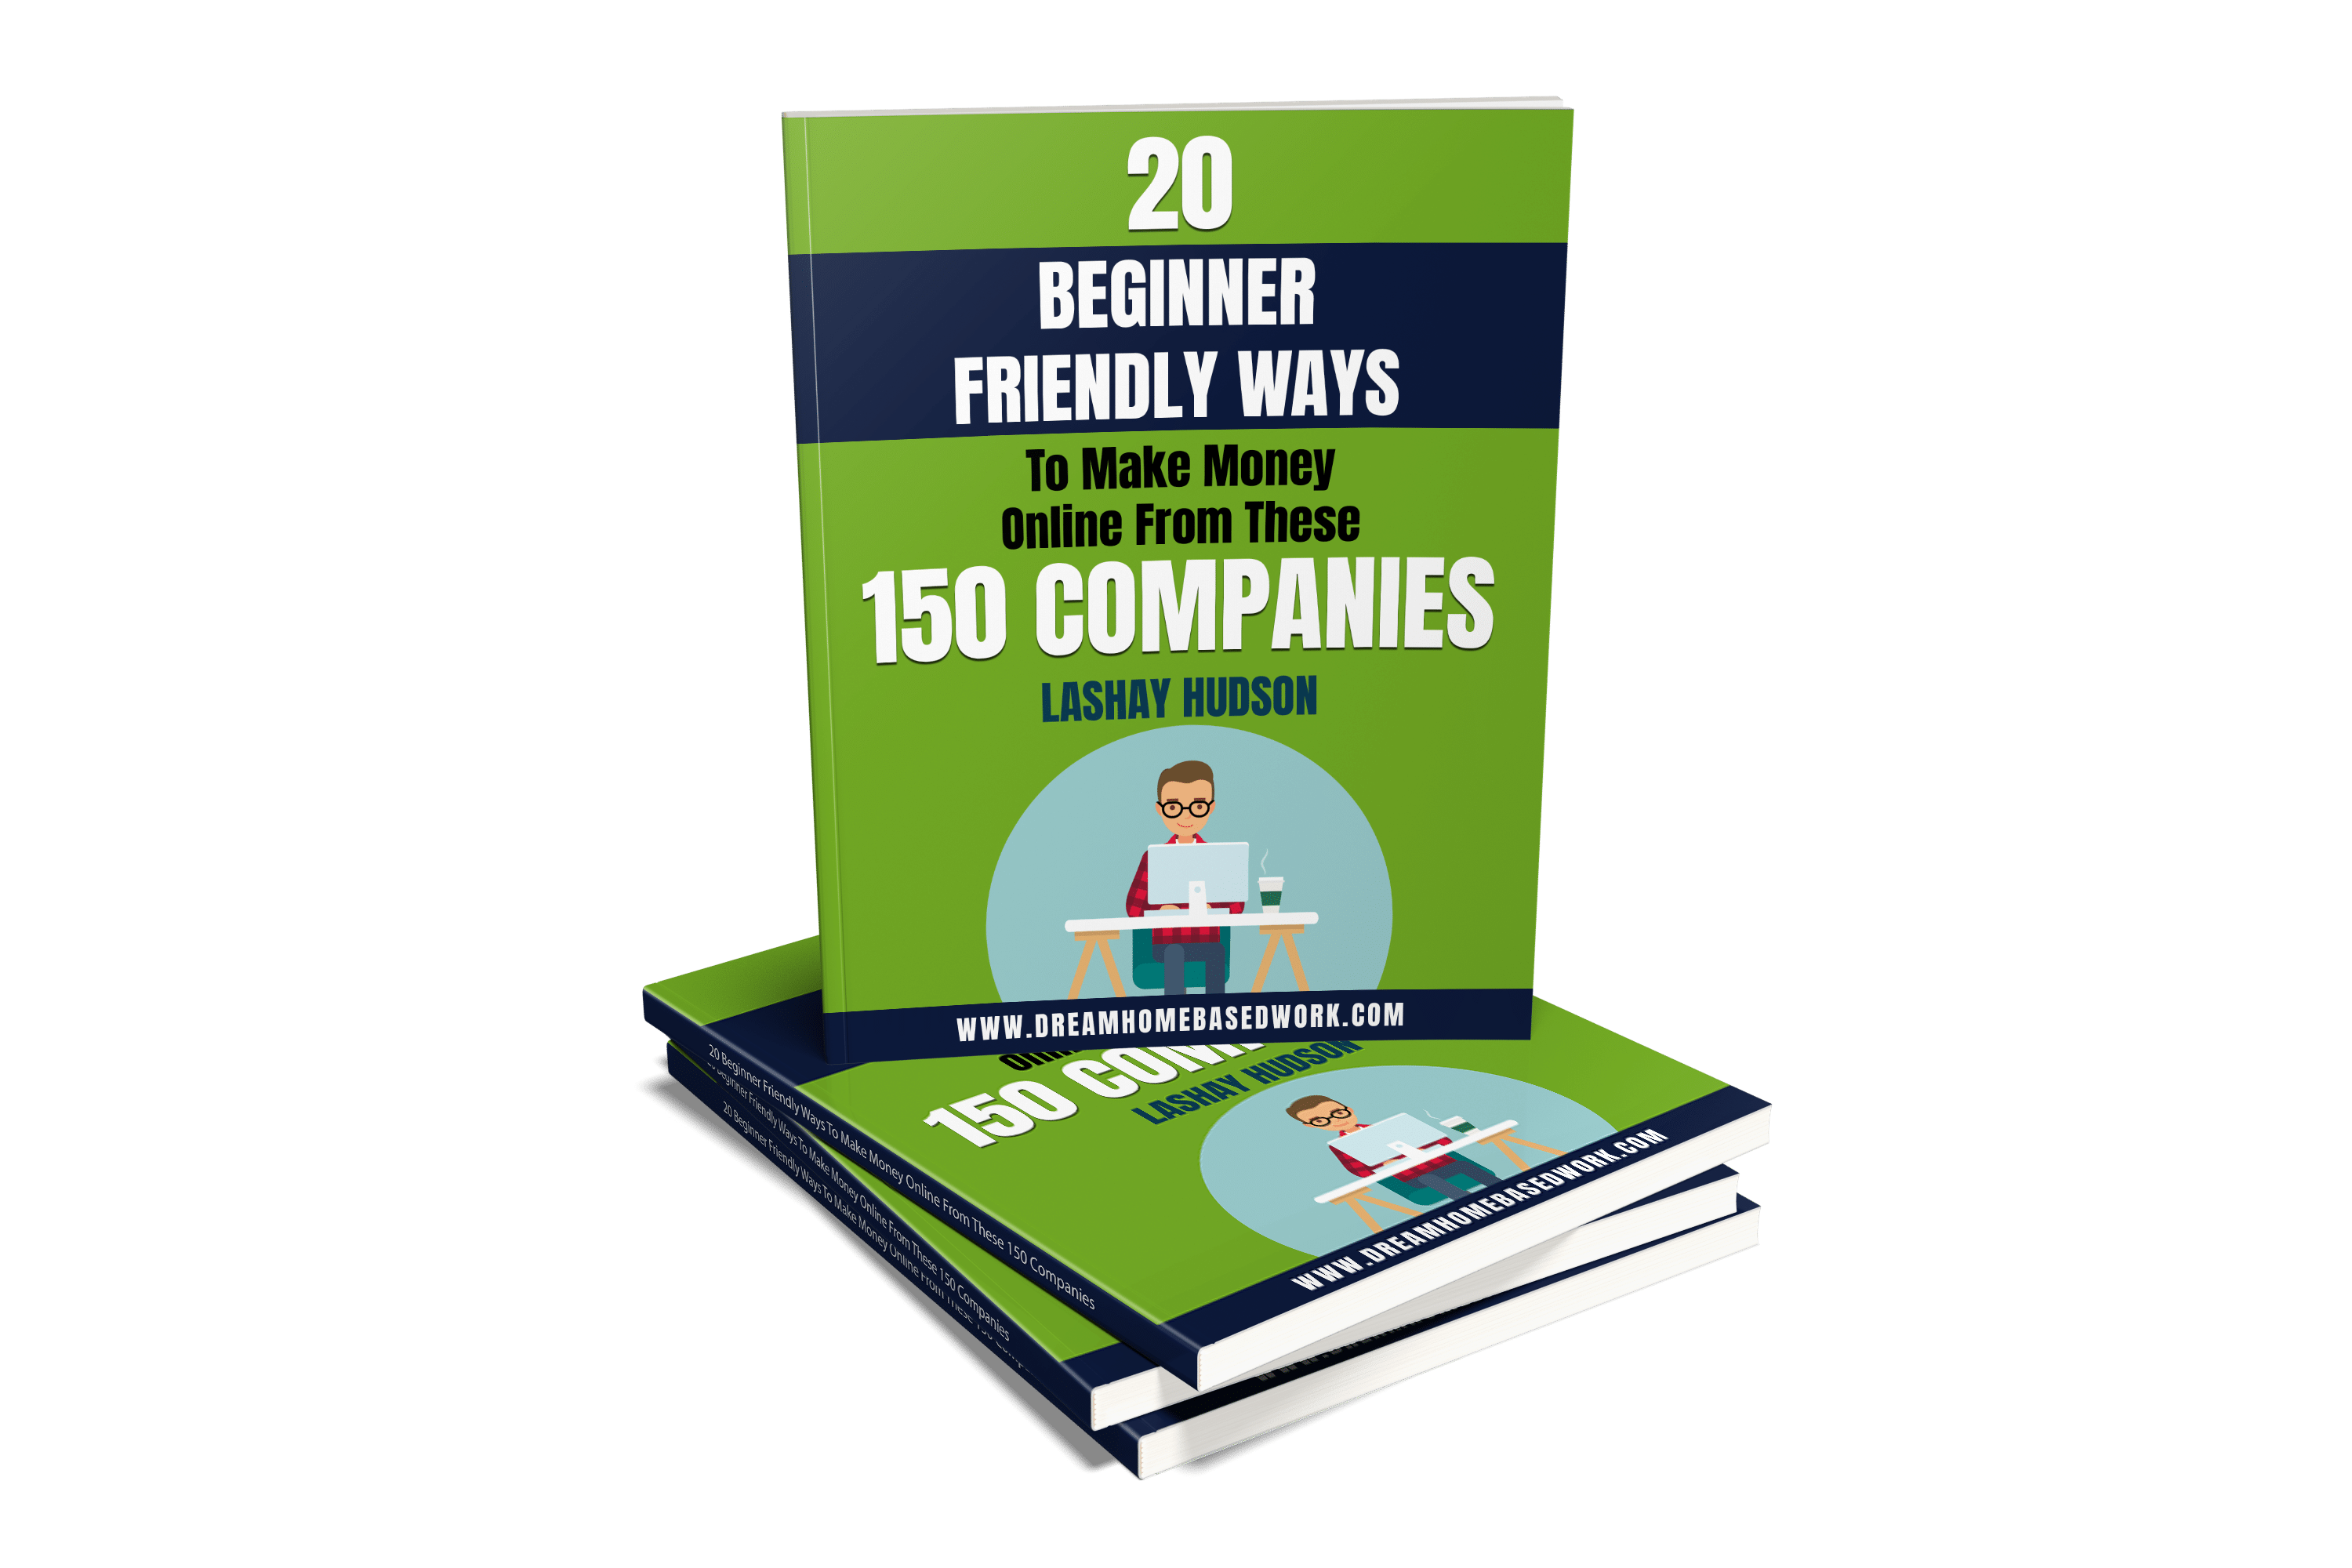 20 Beginner Friendly Ways To Make Money Online from 150 Companies